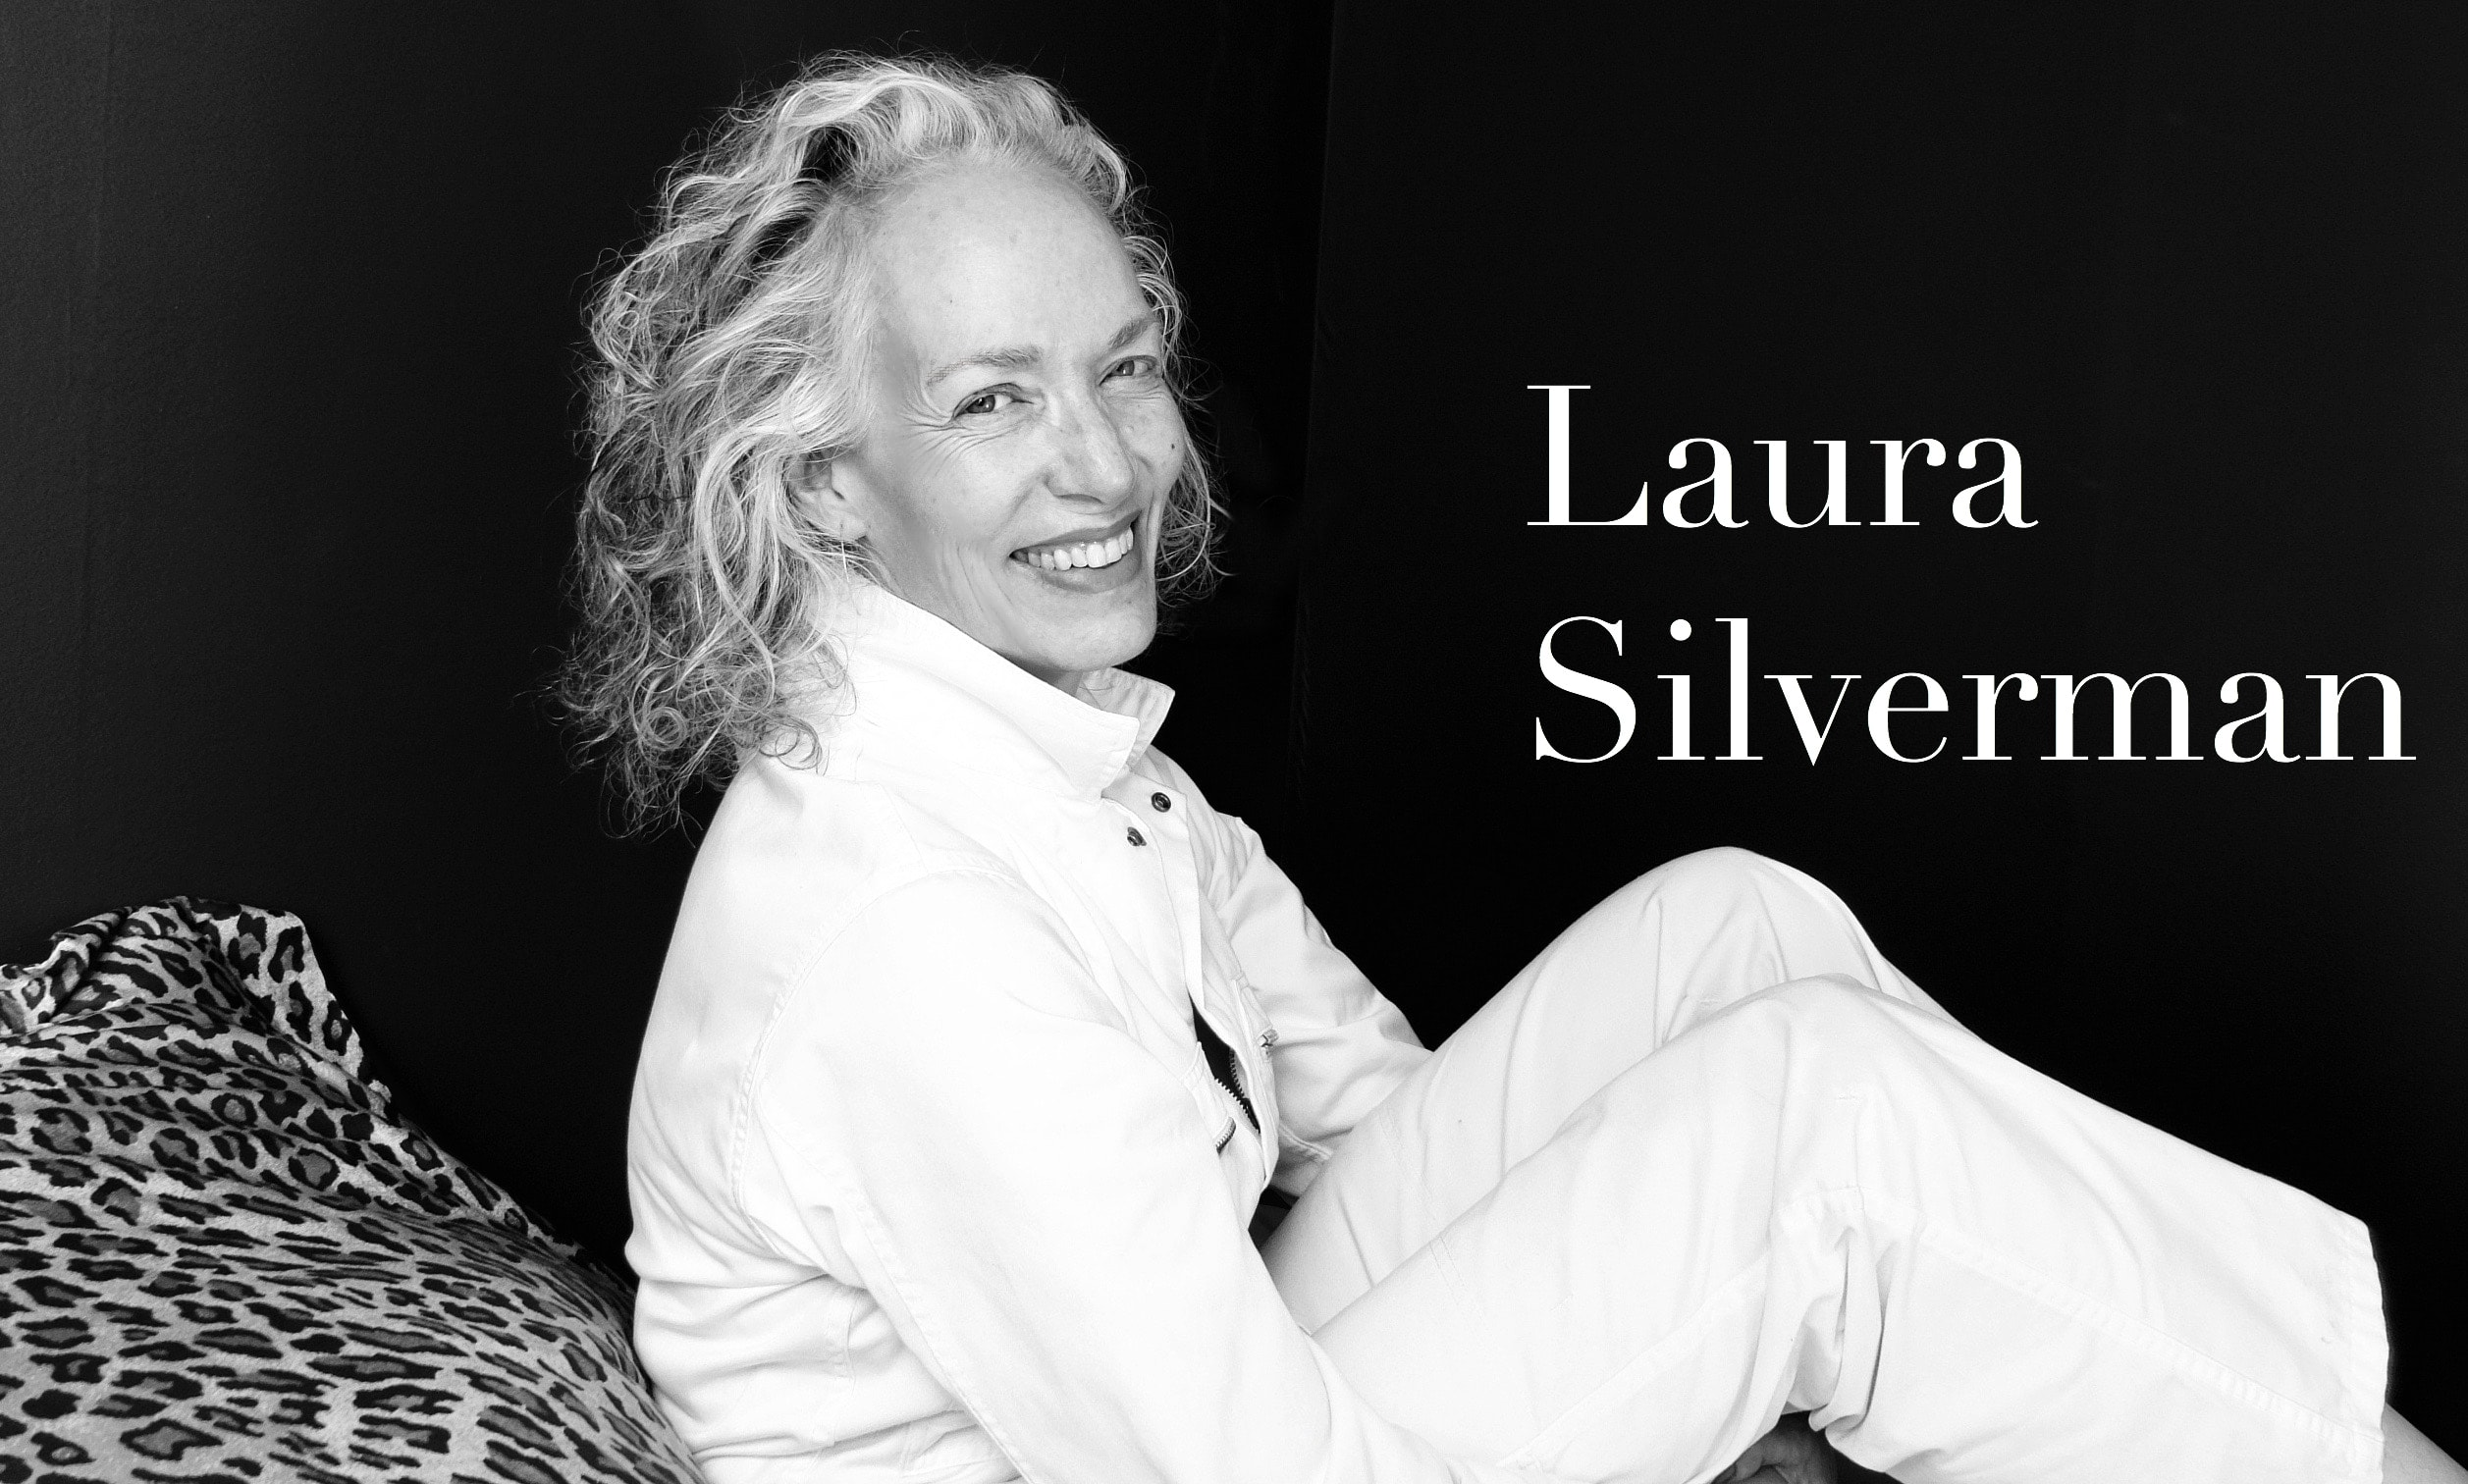 Laura Silverman Portrait_ The Silver Women